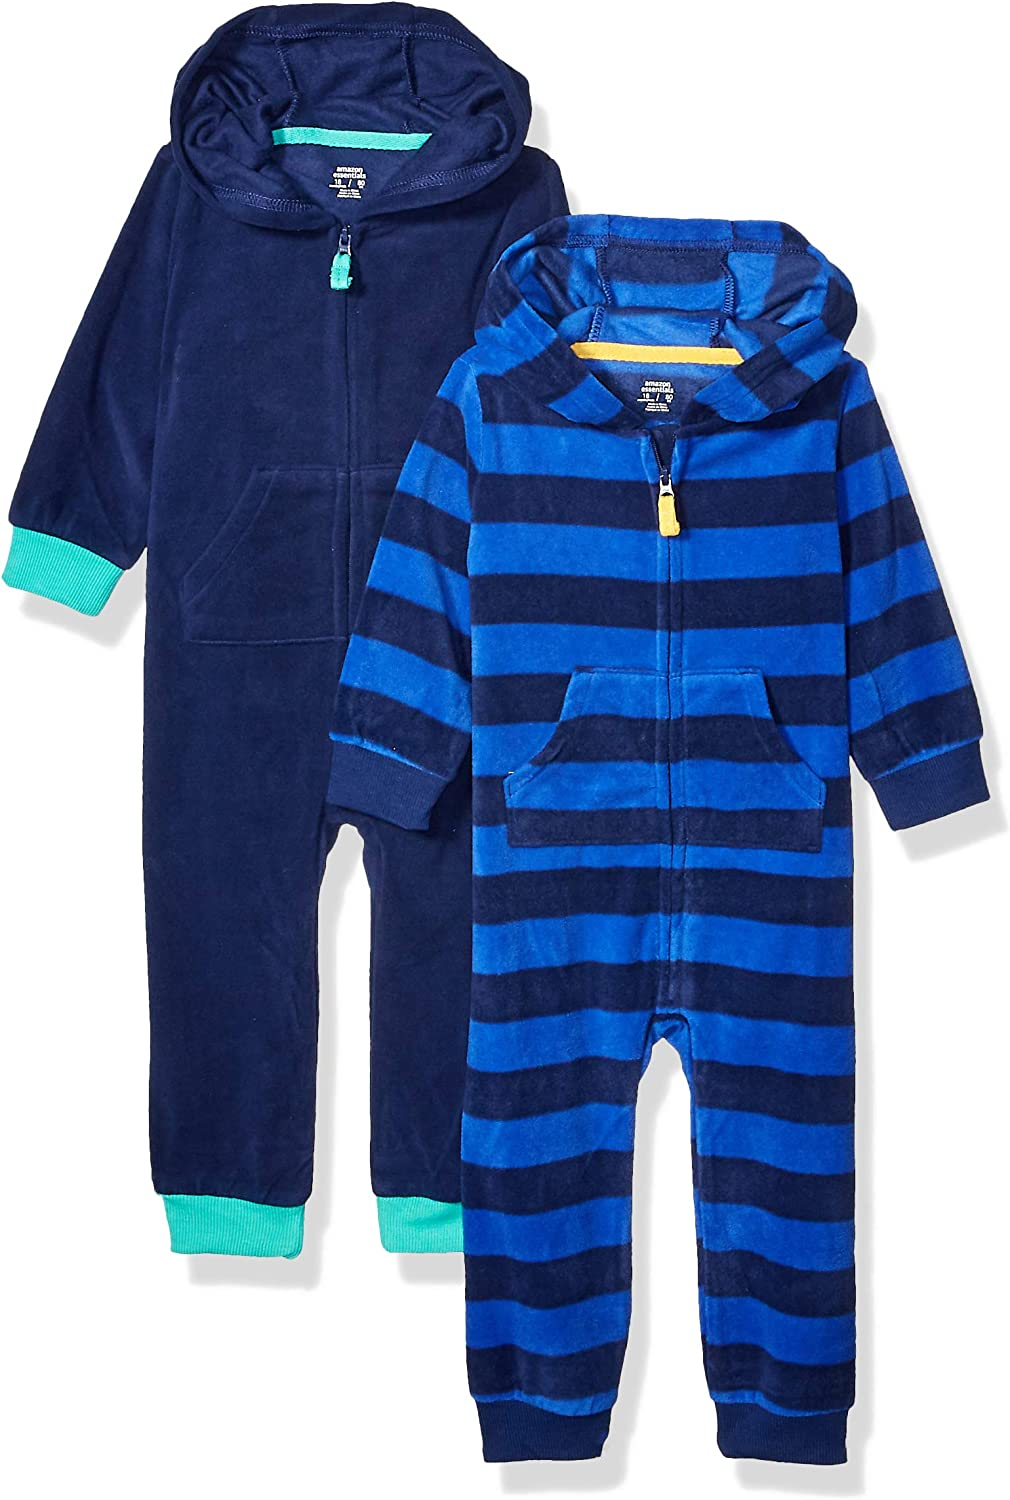 Amazon Essentials Boy's Toddler 2-Pack Microfleece Hooded Coverall